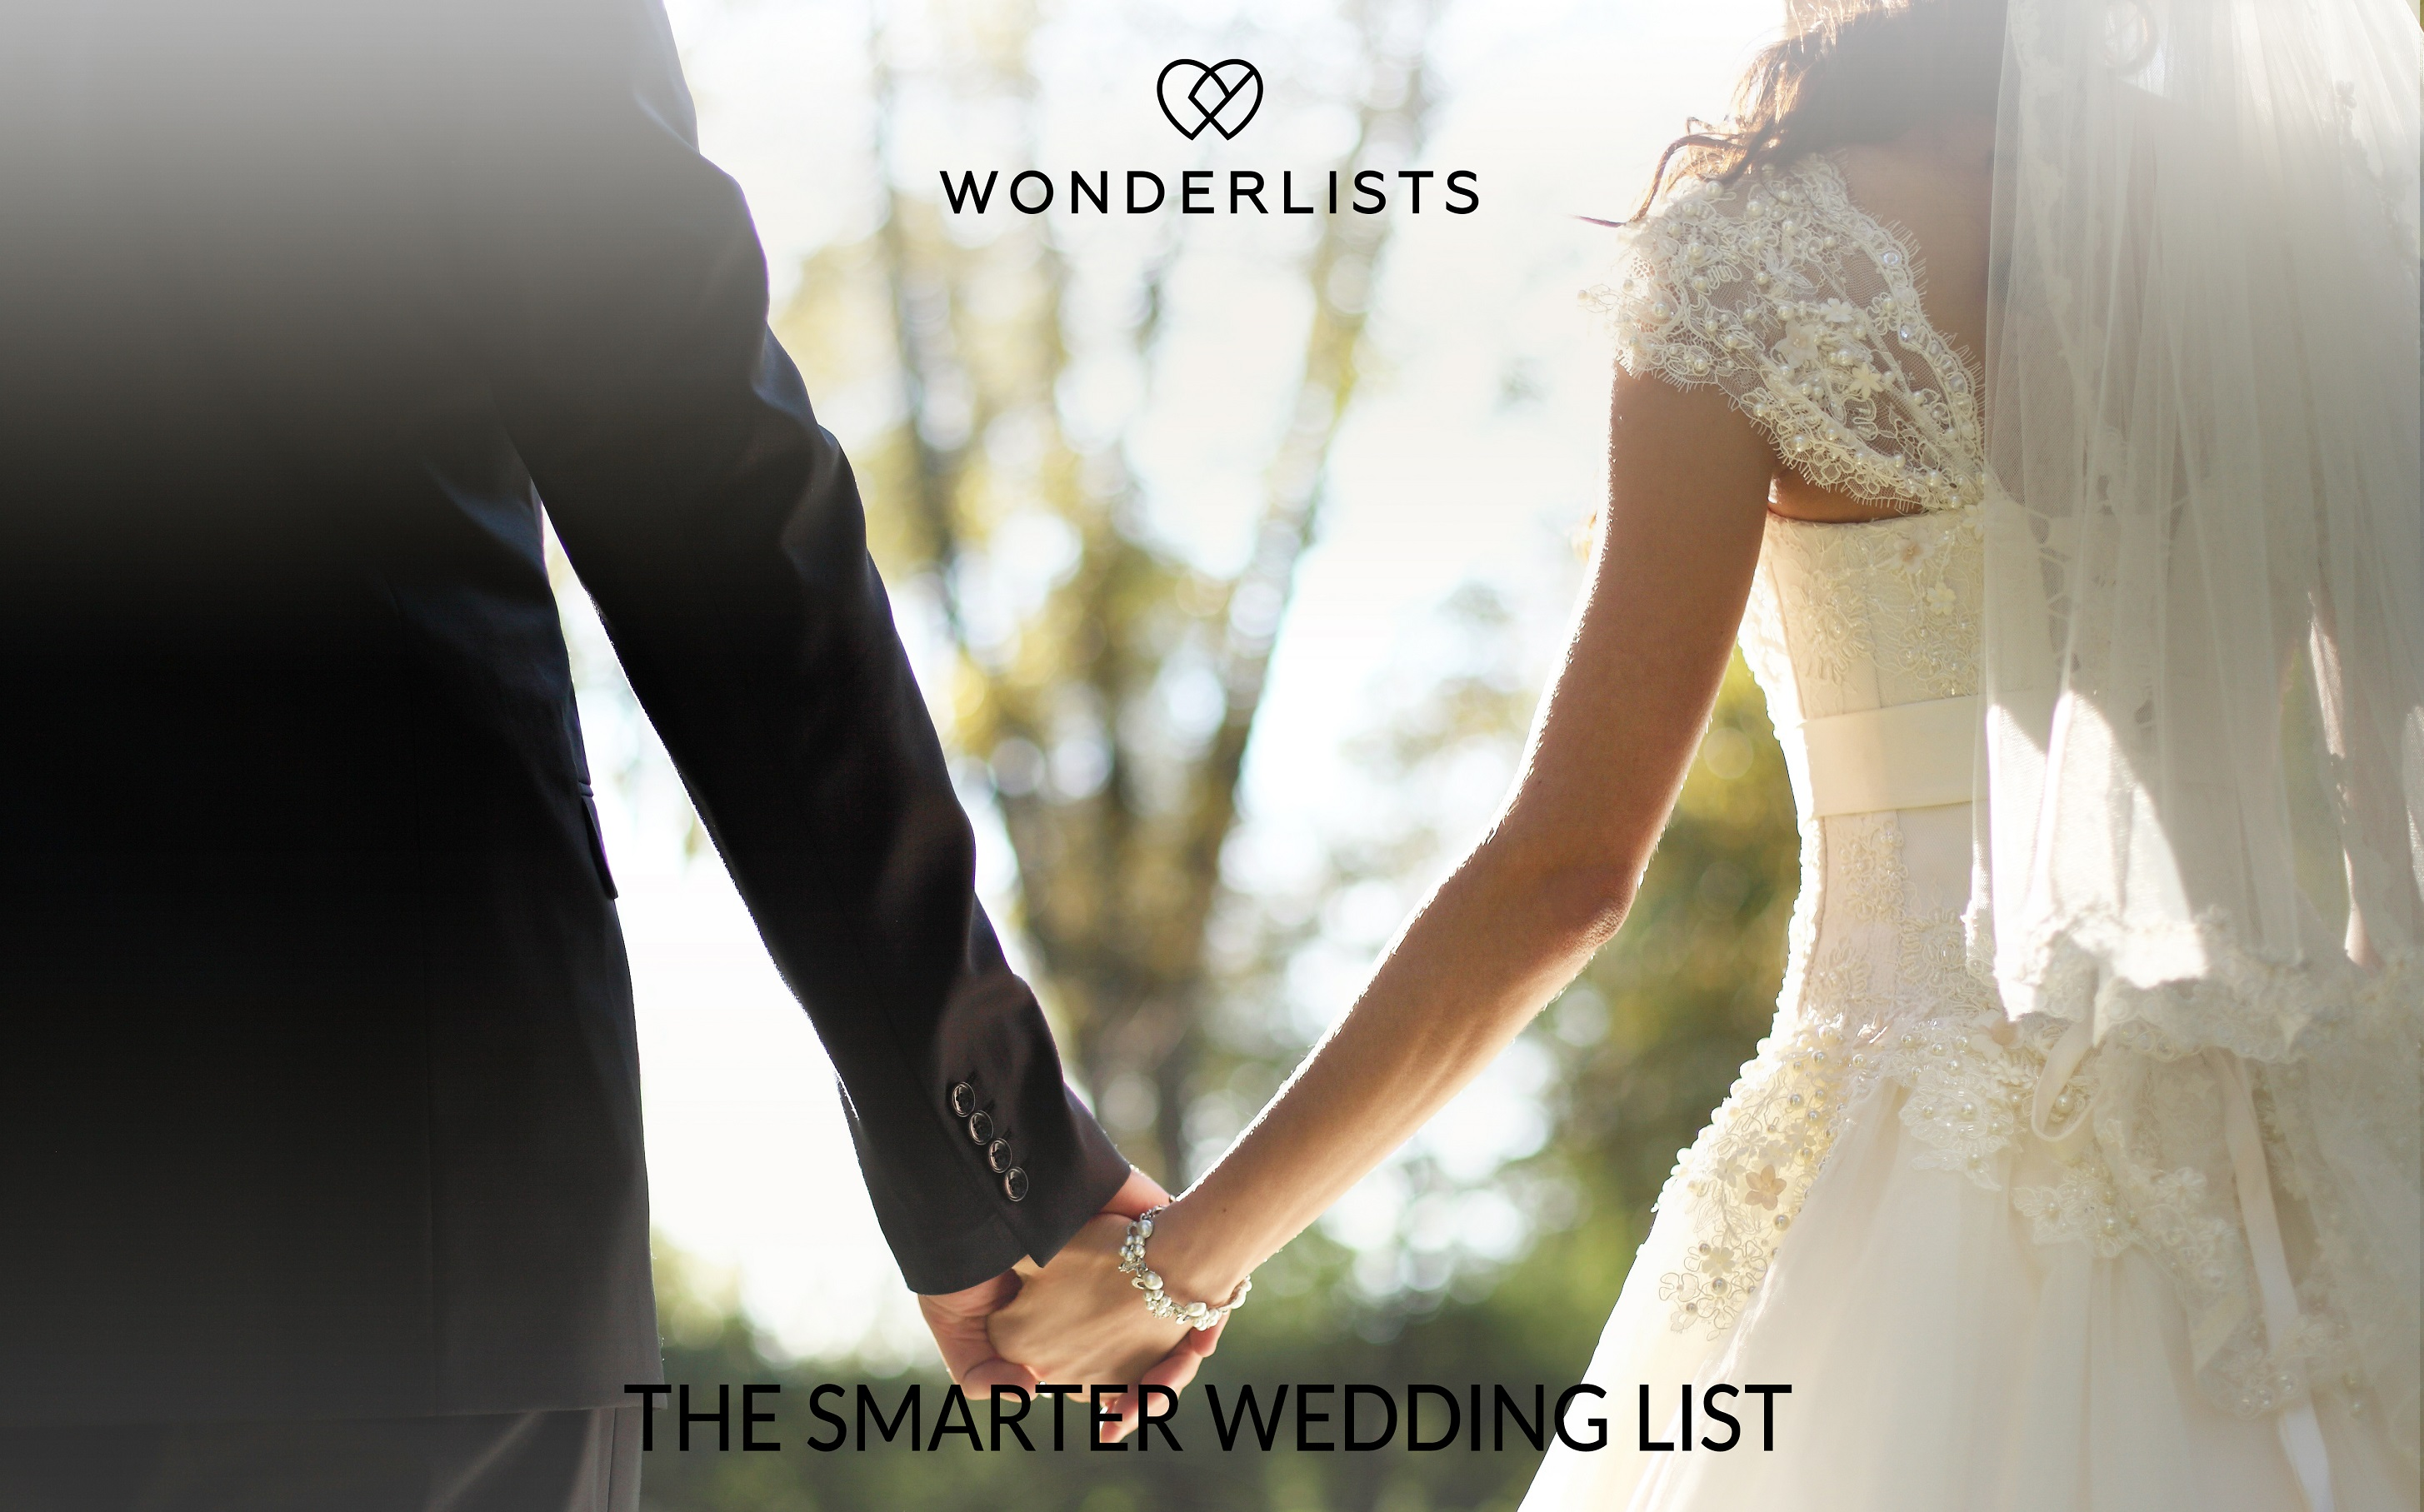 Online Wedding Registry.The First Of Its Kind In Lebanon Wonderlists Is An Innovative Online